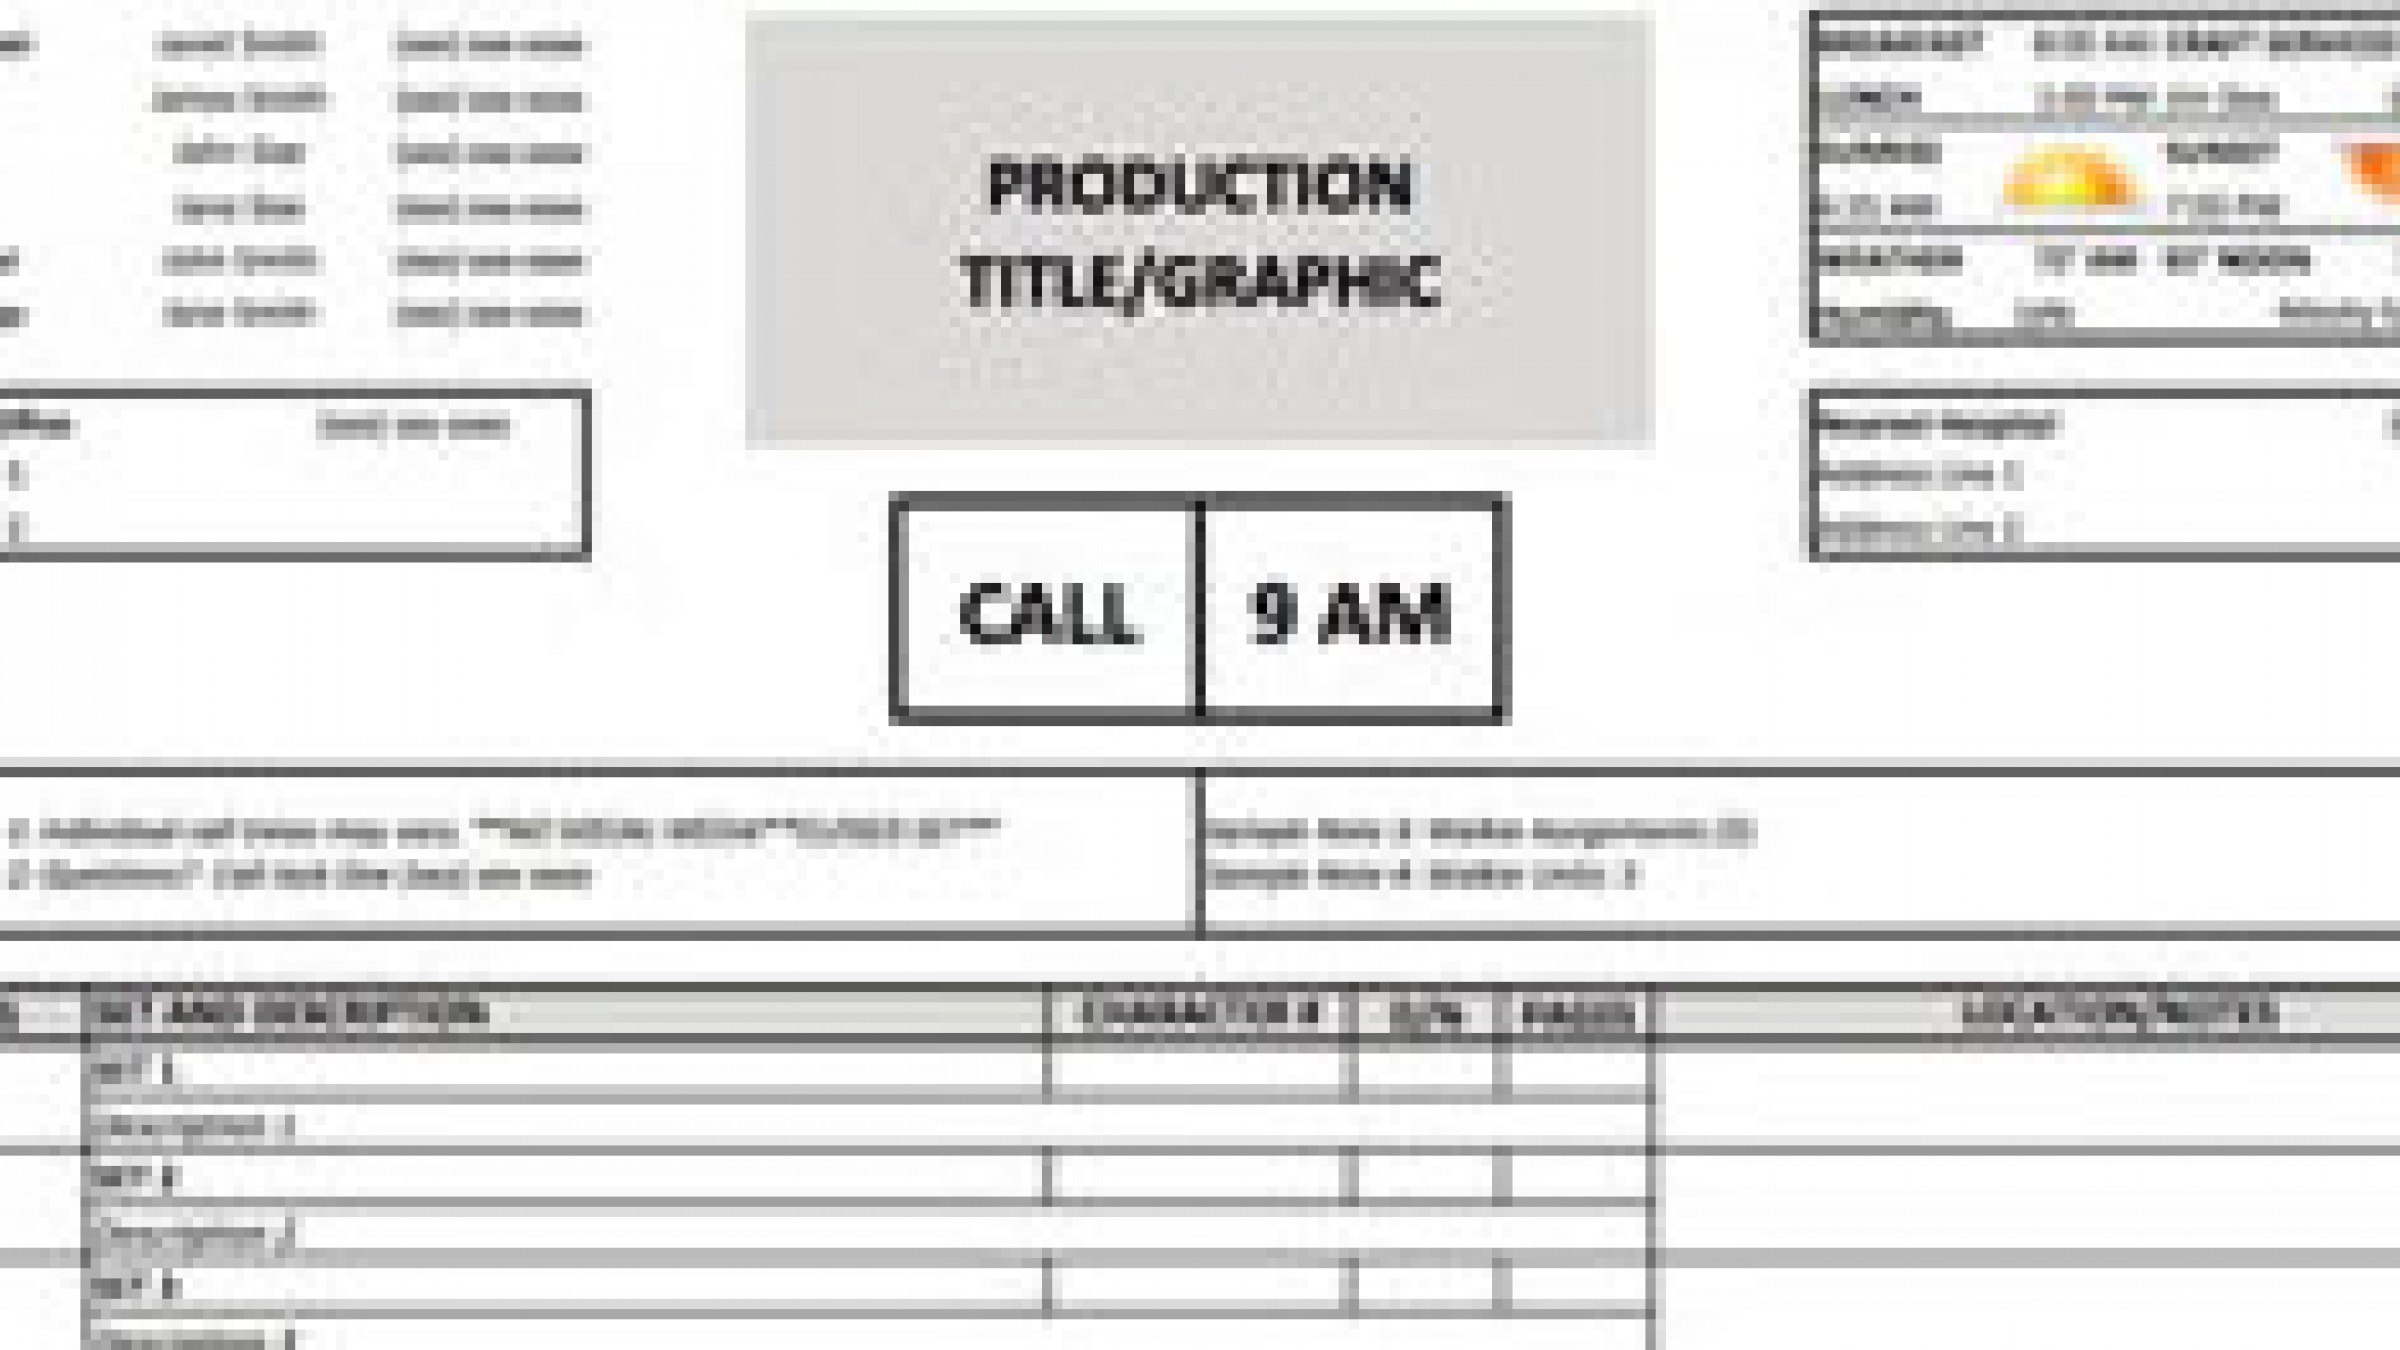 Download A Free Call Sheet Template To Get Your Film Crew On The Same Page